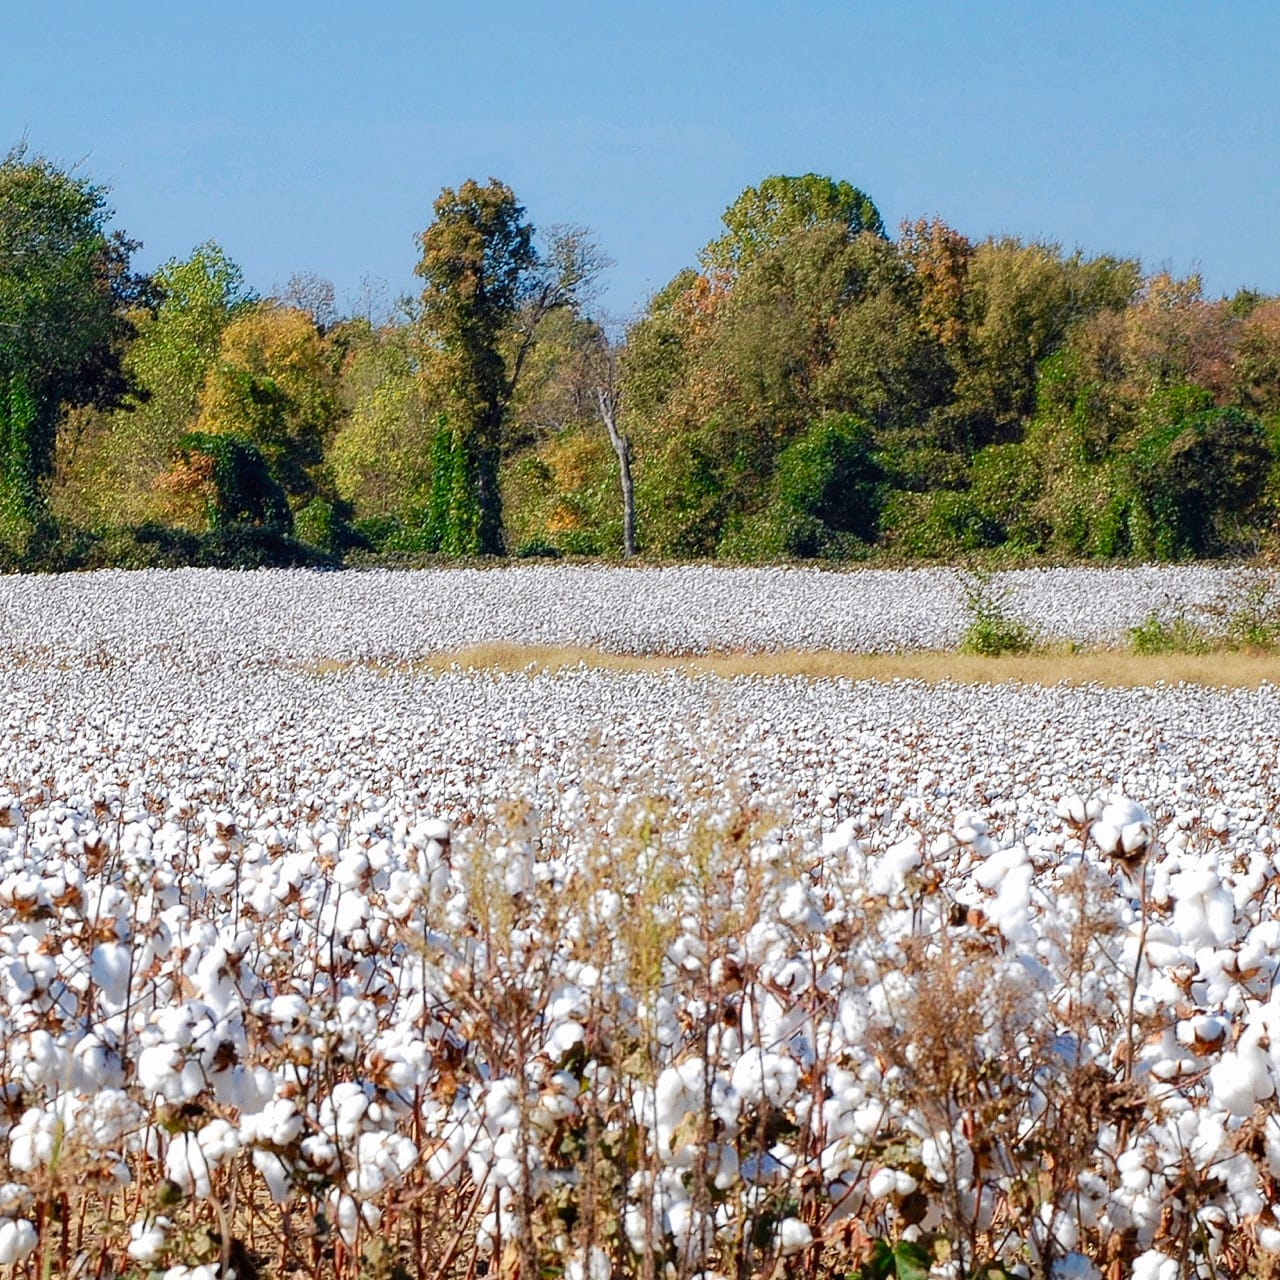 Cotton in West Tennessee, photo by Edgar Pierce (CC-BY-SA-2.0)